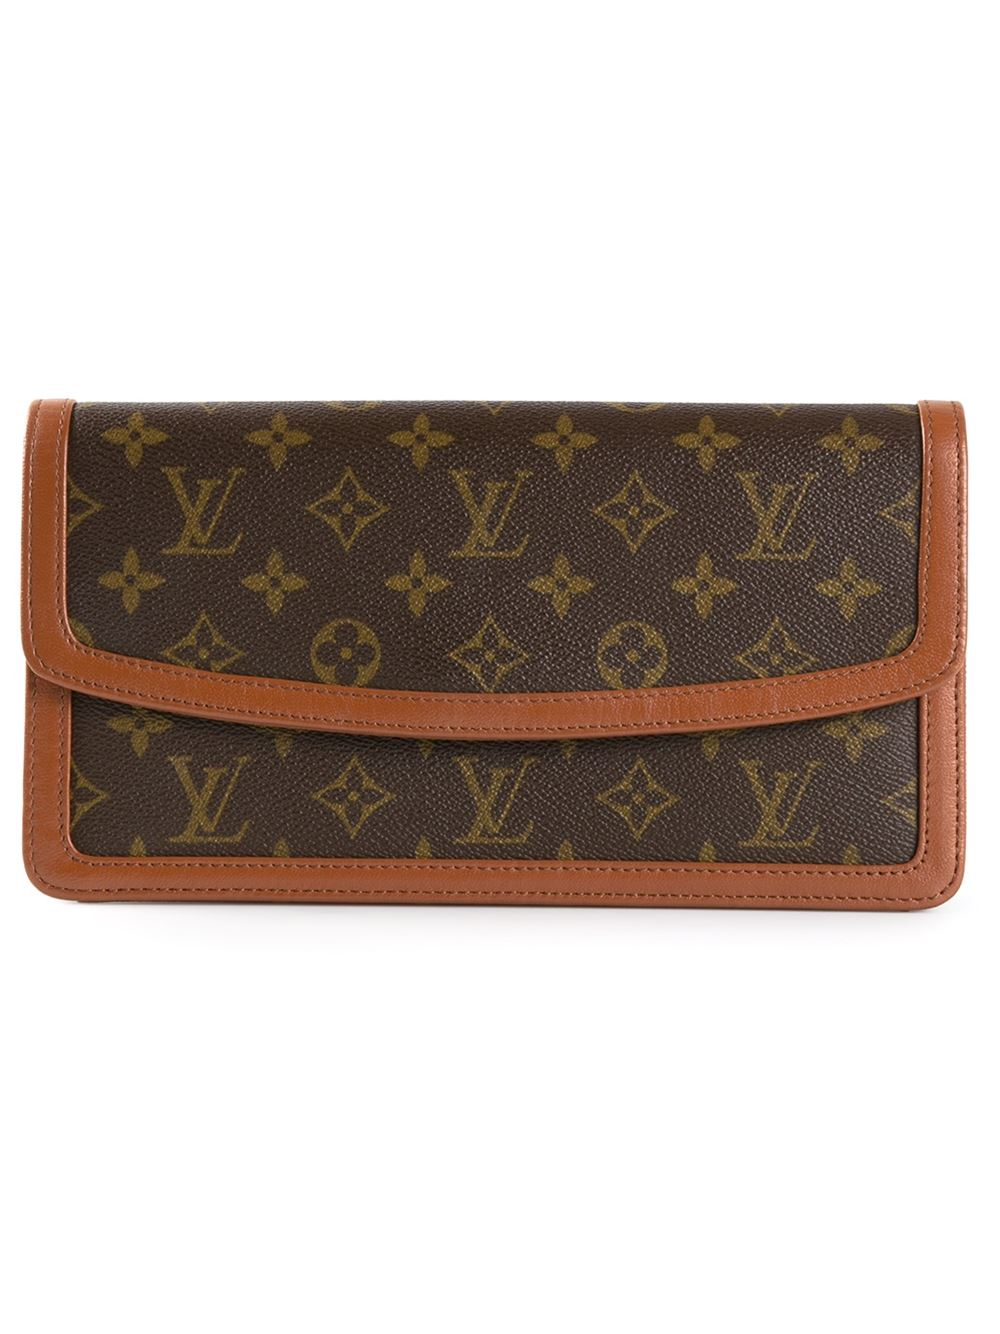 louis vuitton monogram dame clutch in brown lyst